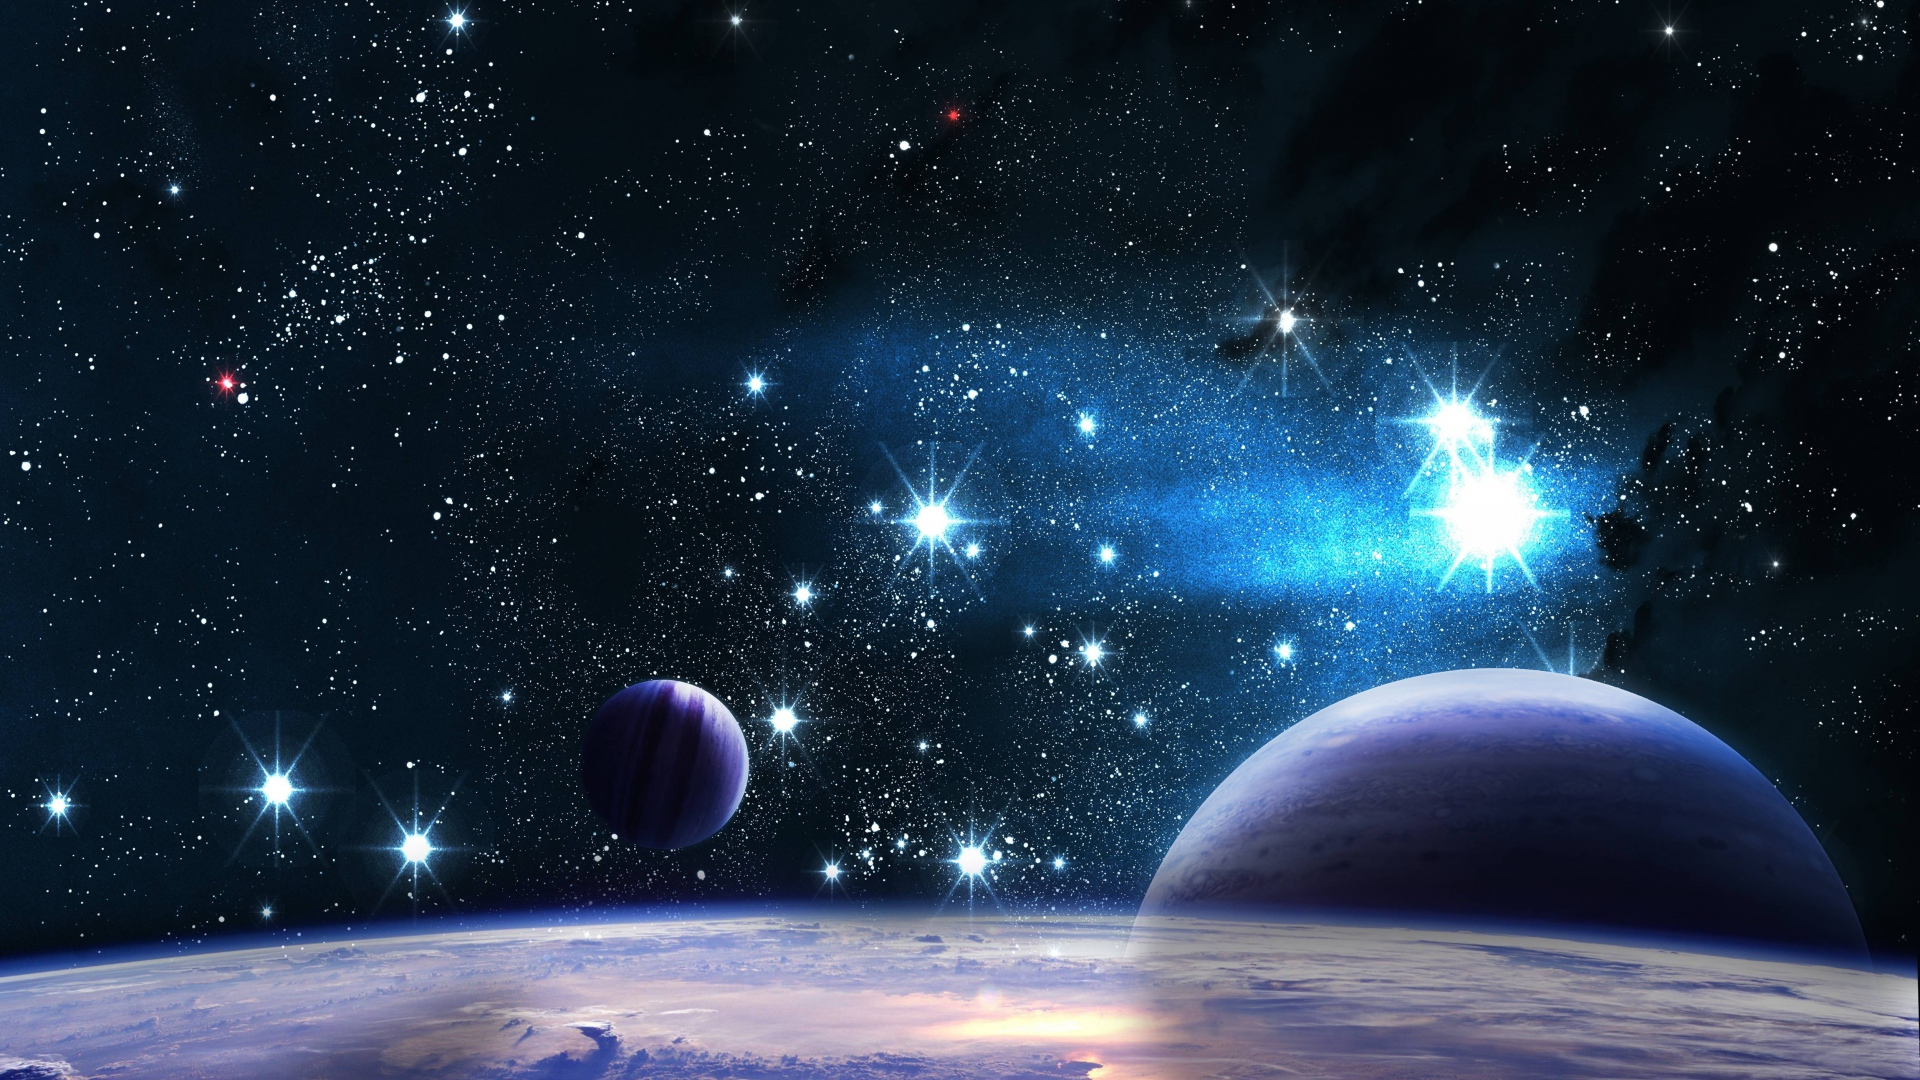 Download Wallpaper 1920x1080 Space Stars Planets Shine Full HD